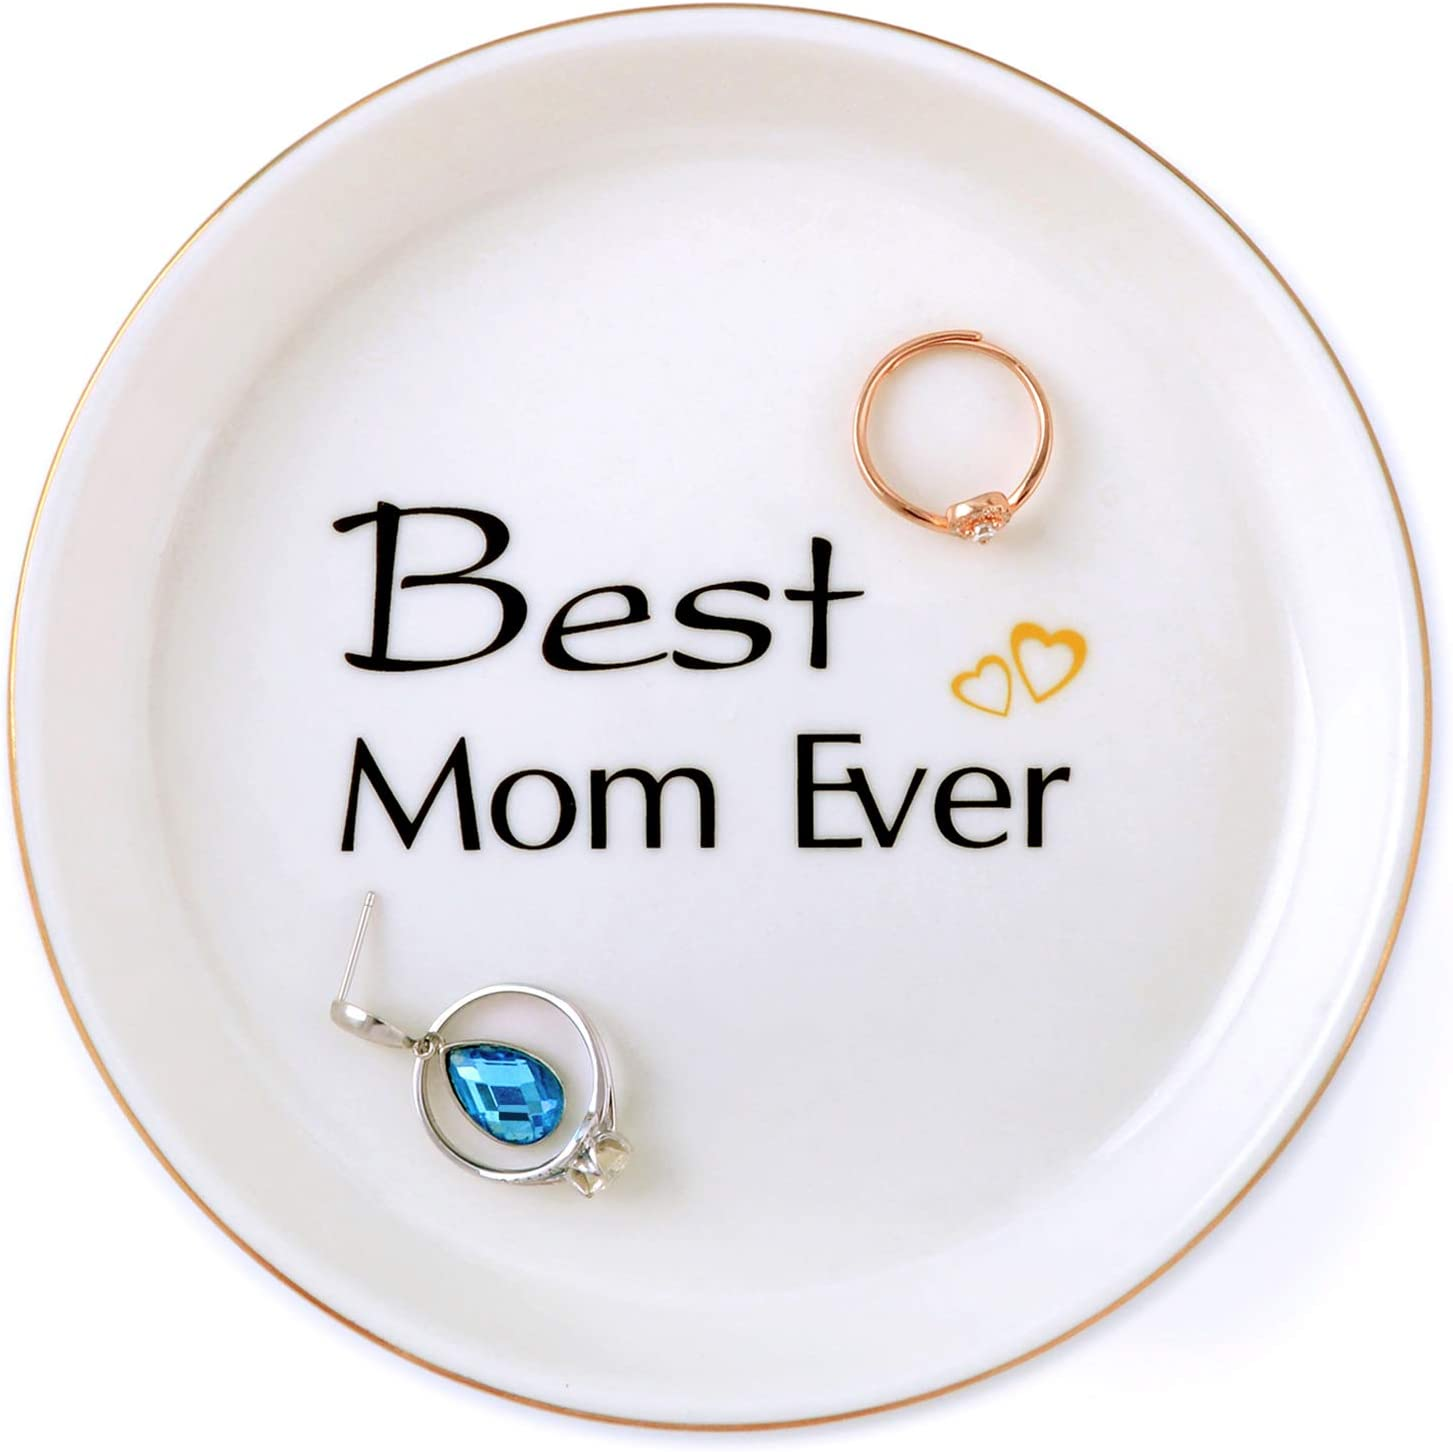 Mom Gifts Birthday Gifts Idea for Mom Mother in Law from Daughter Son Wife Bride, Best Mom Ever Ceramic Jewelry Tray Trinket Ring Dish Home Decor, Thanksgiving Christmas Mother Day Valentine